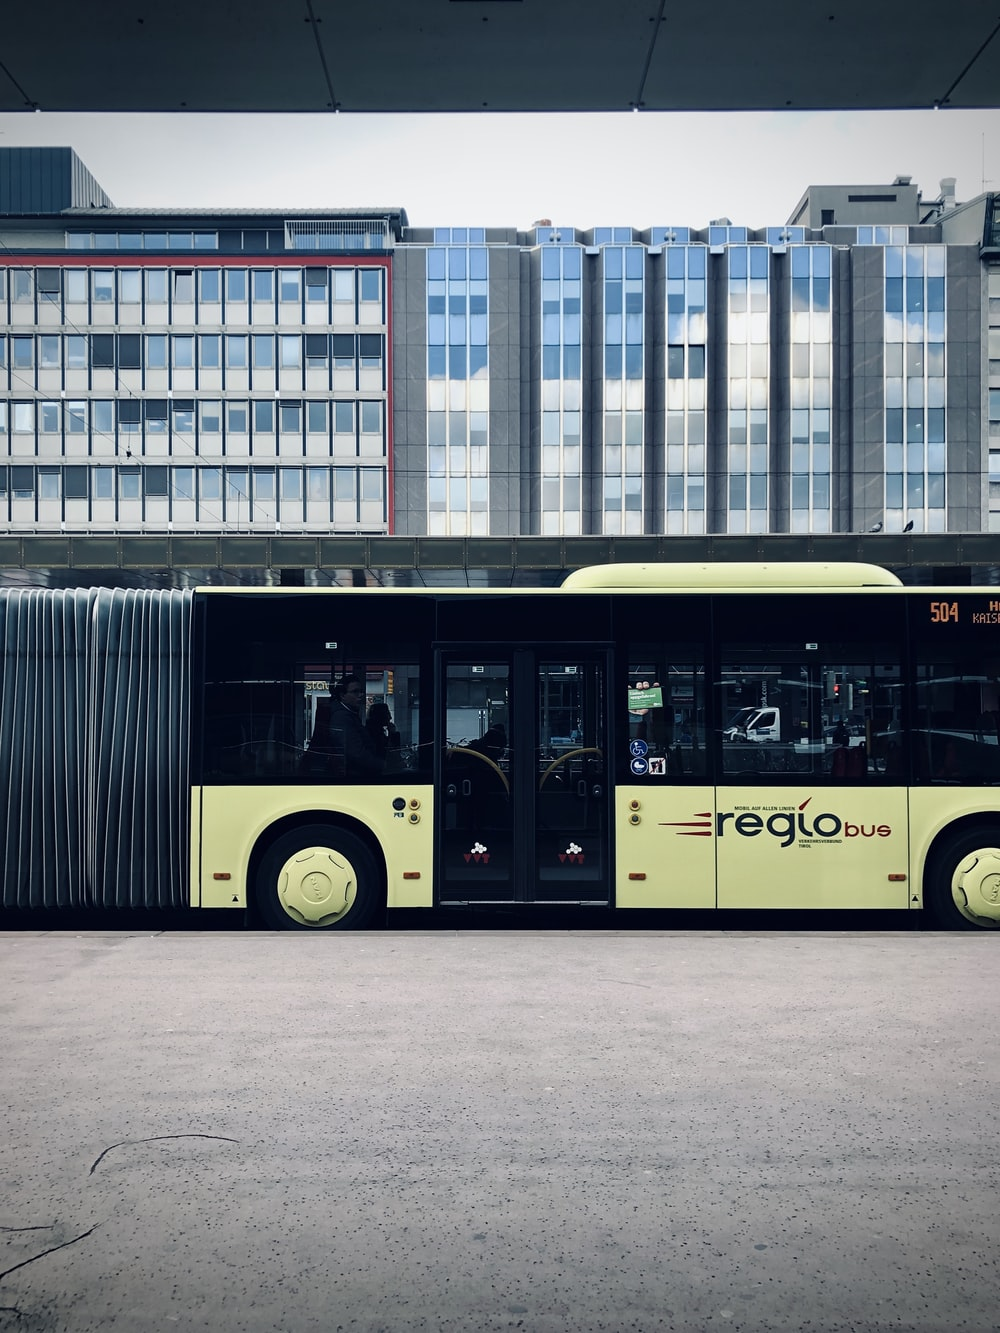 yellow bus in front of white concrete building during daytime